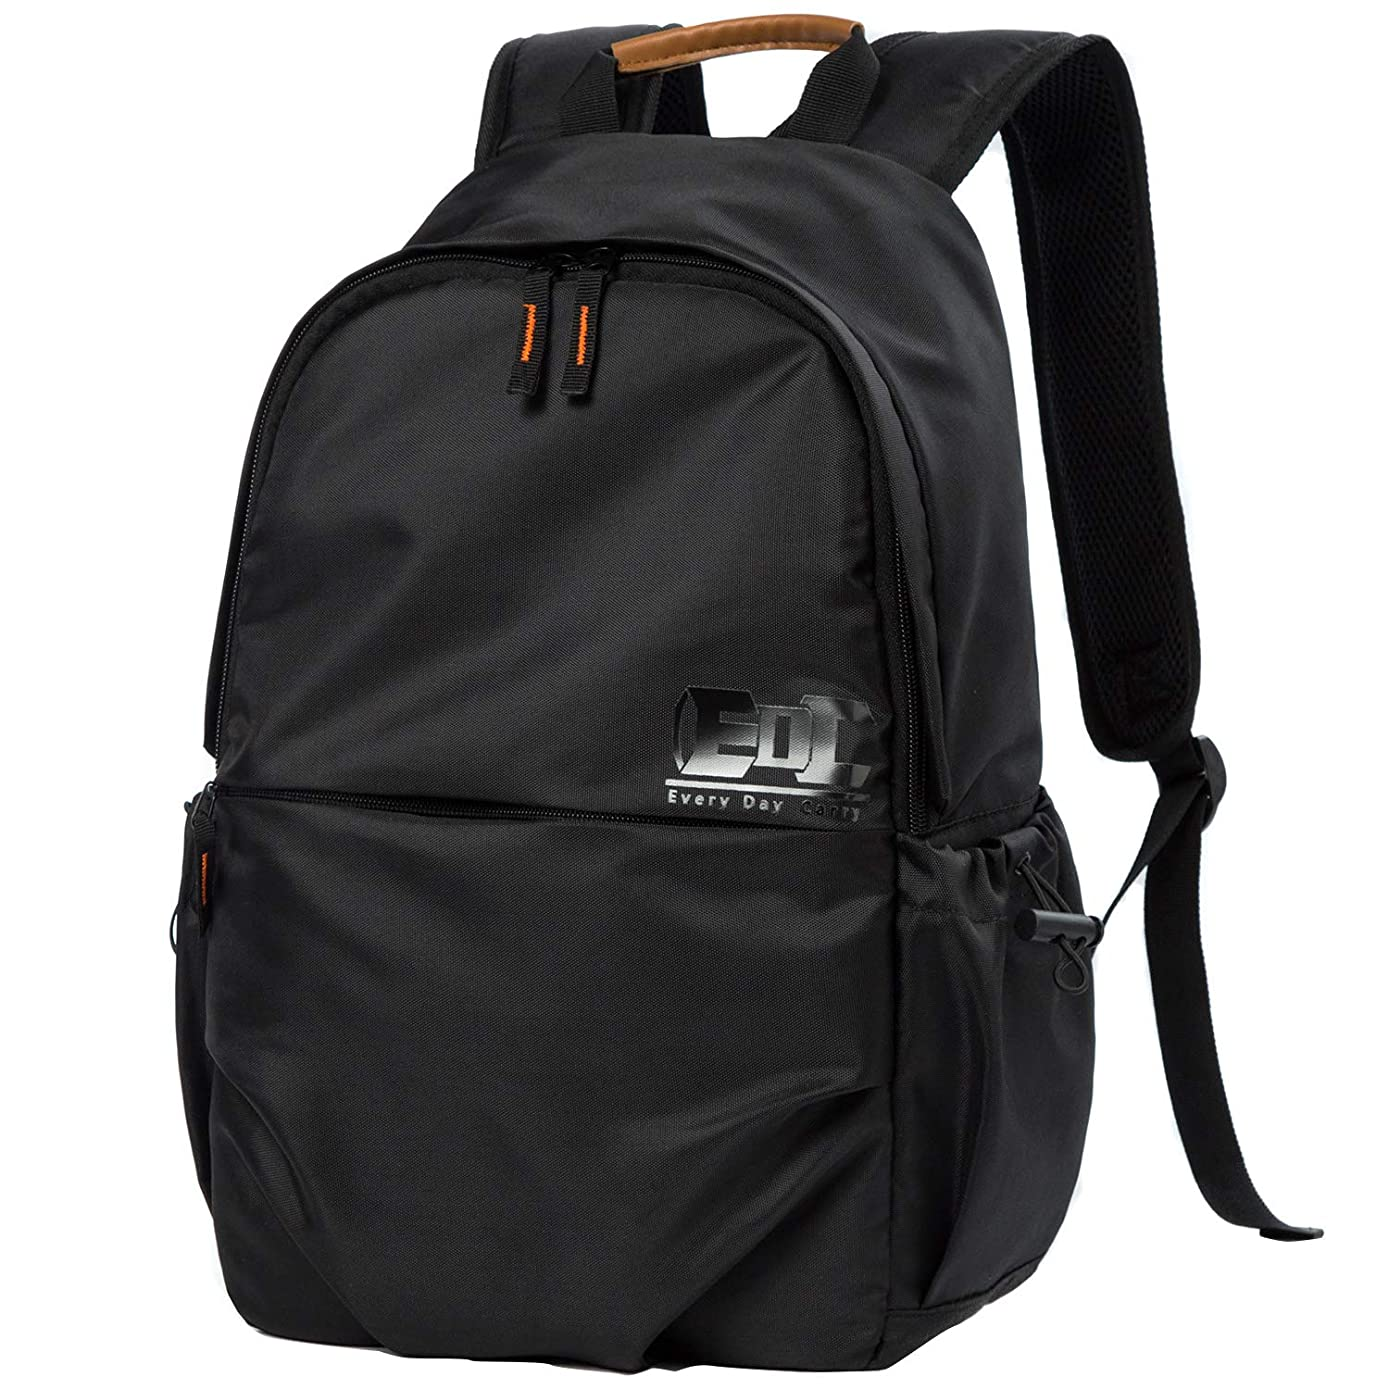 Laptop Backpack,Travel Computer Backpack for Men & Women,Basic College School Backpack Fit for 15.5 Inch Laptop and Notebook by Aumtisc (Blk)